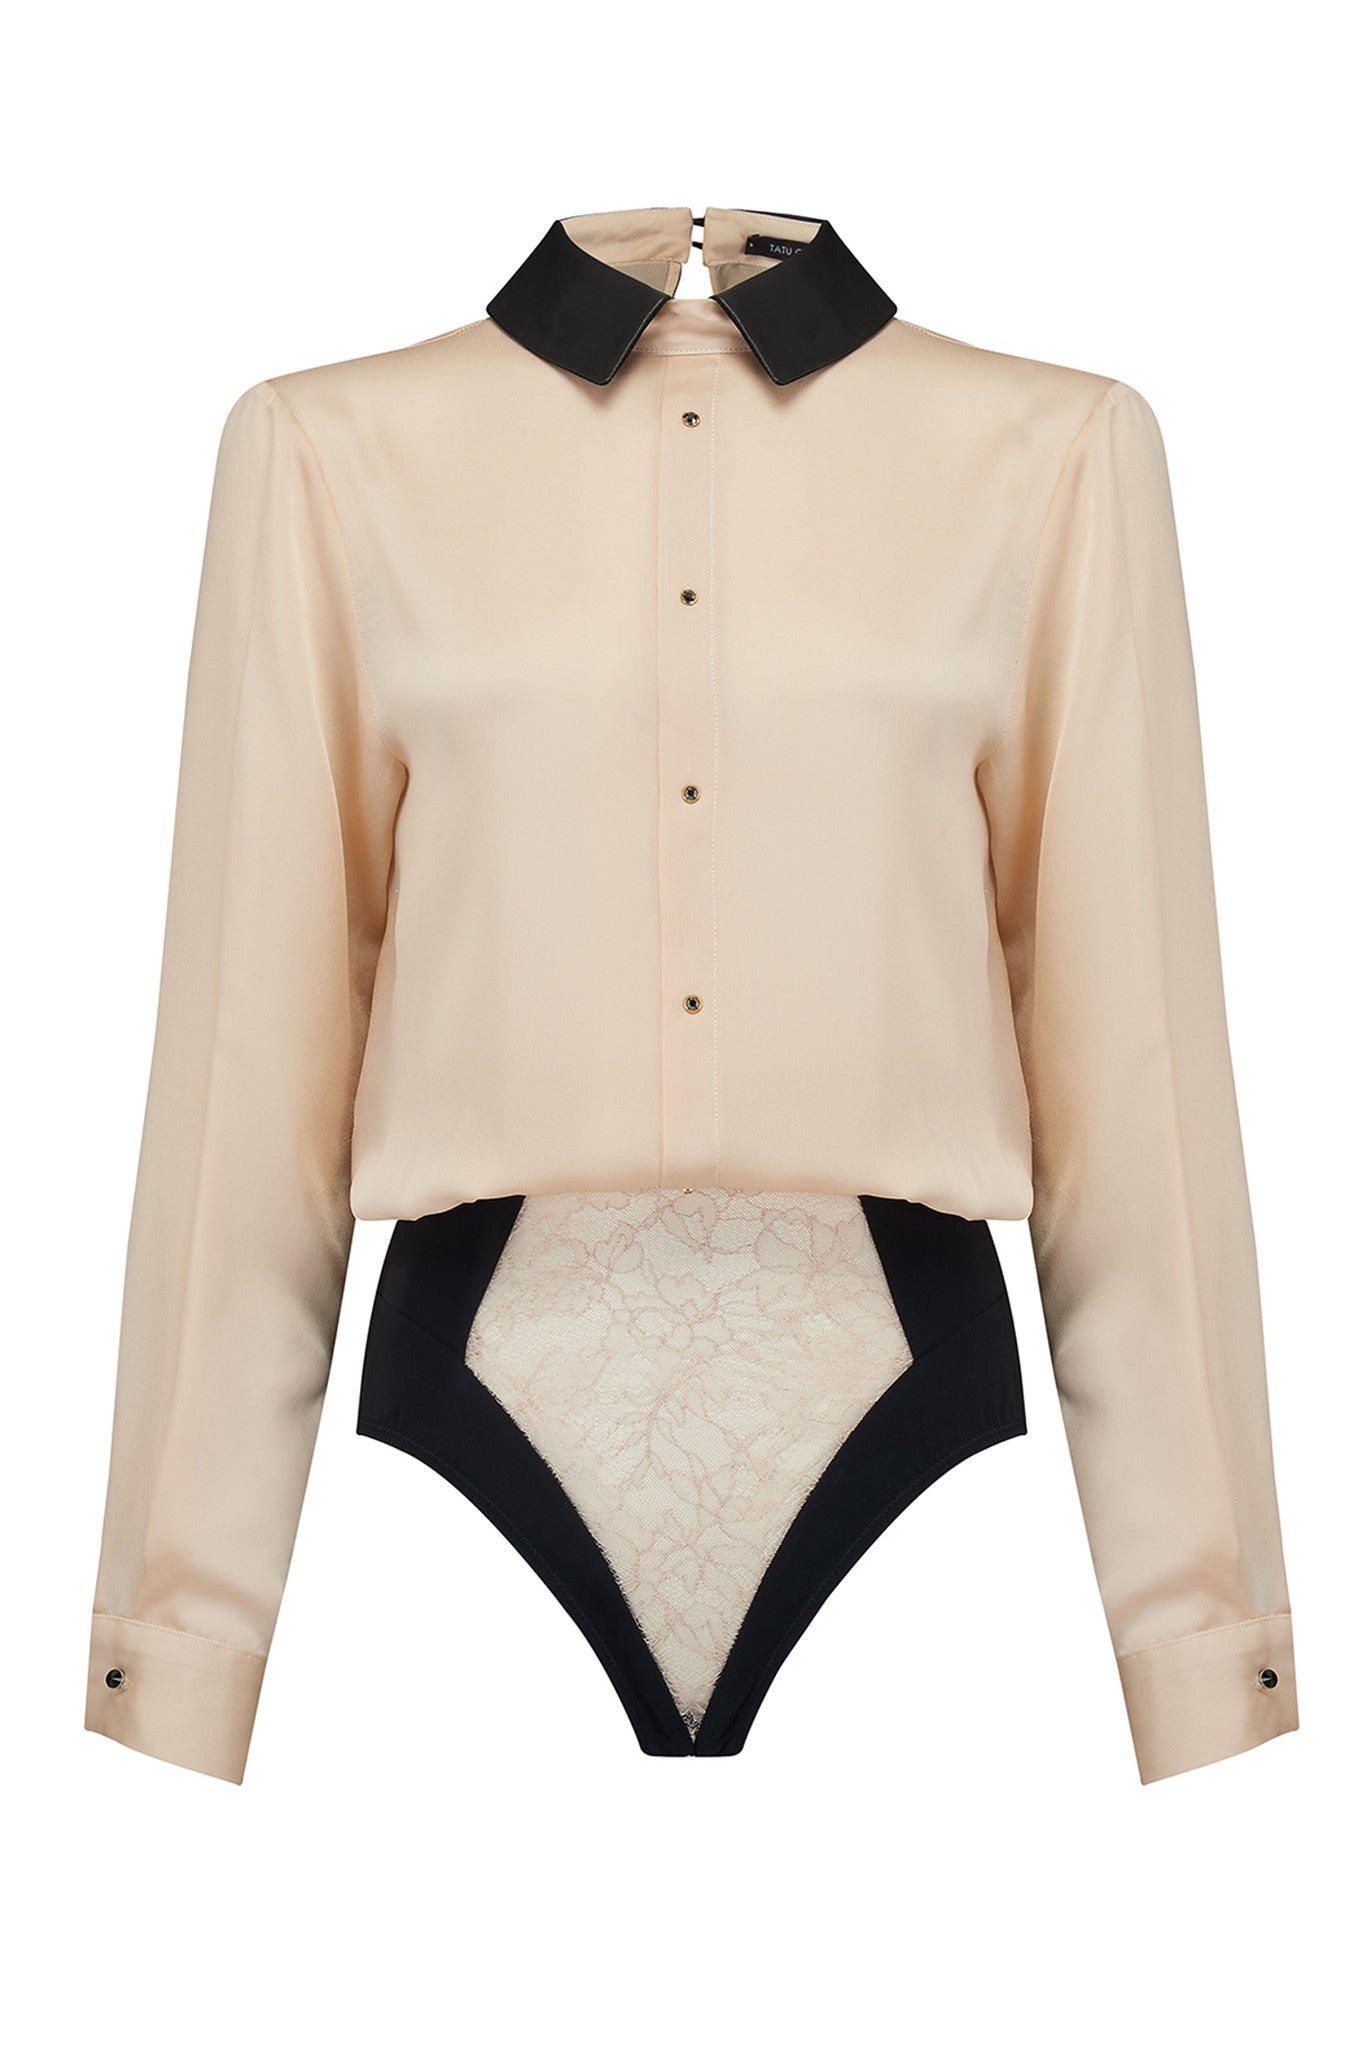 Lula Blush sheer bodysuit blouse in cream silk with luxury lace brief